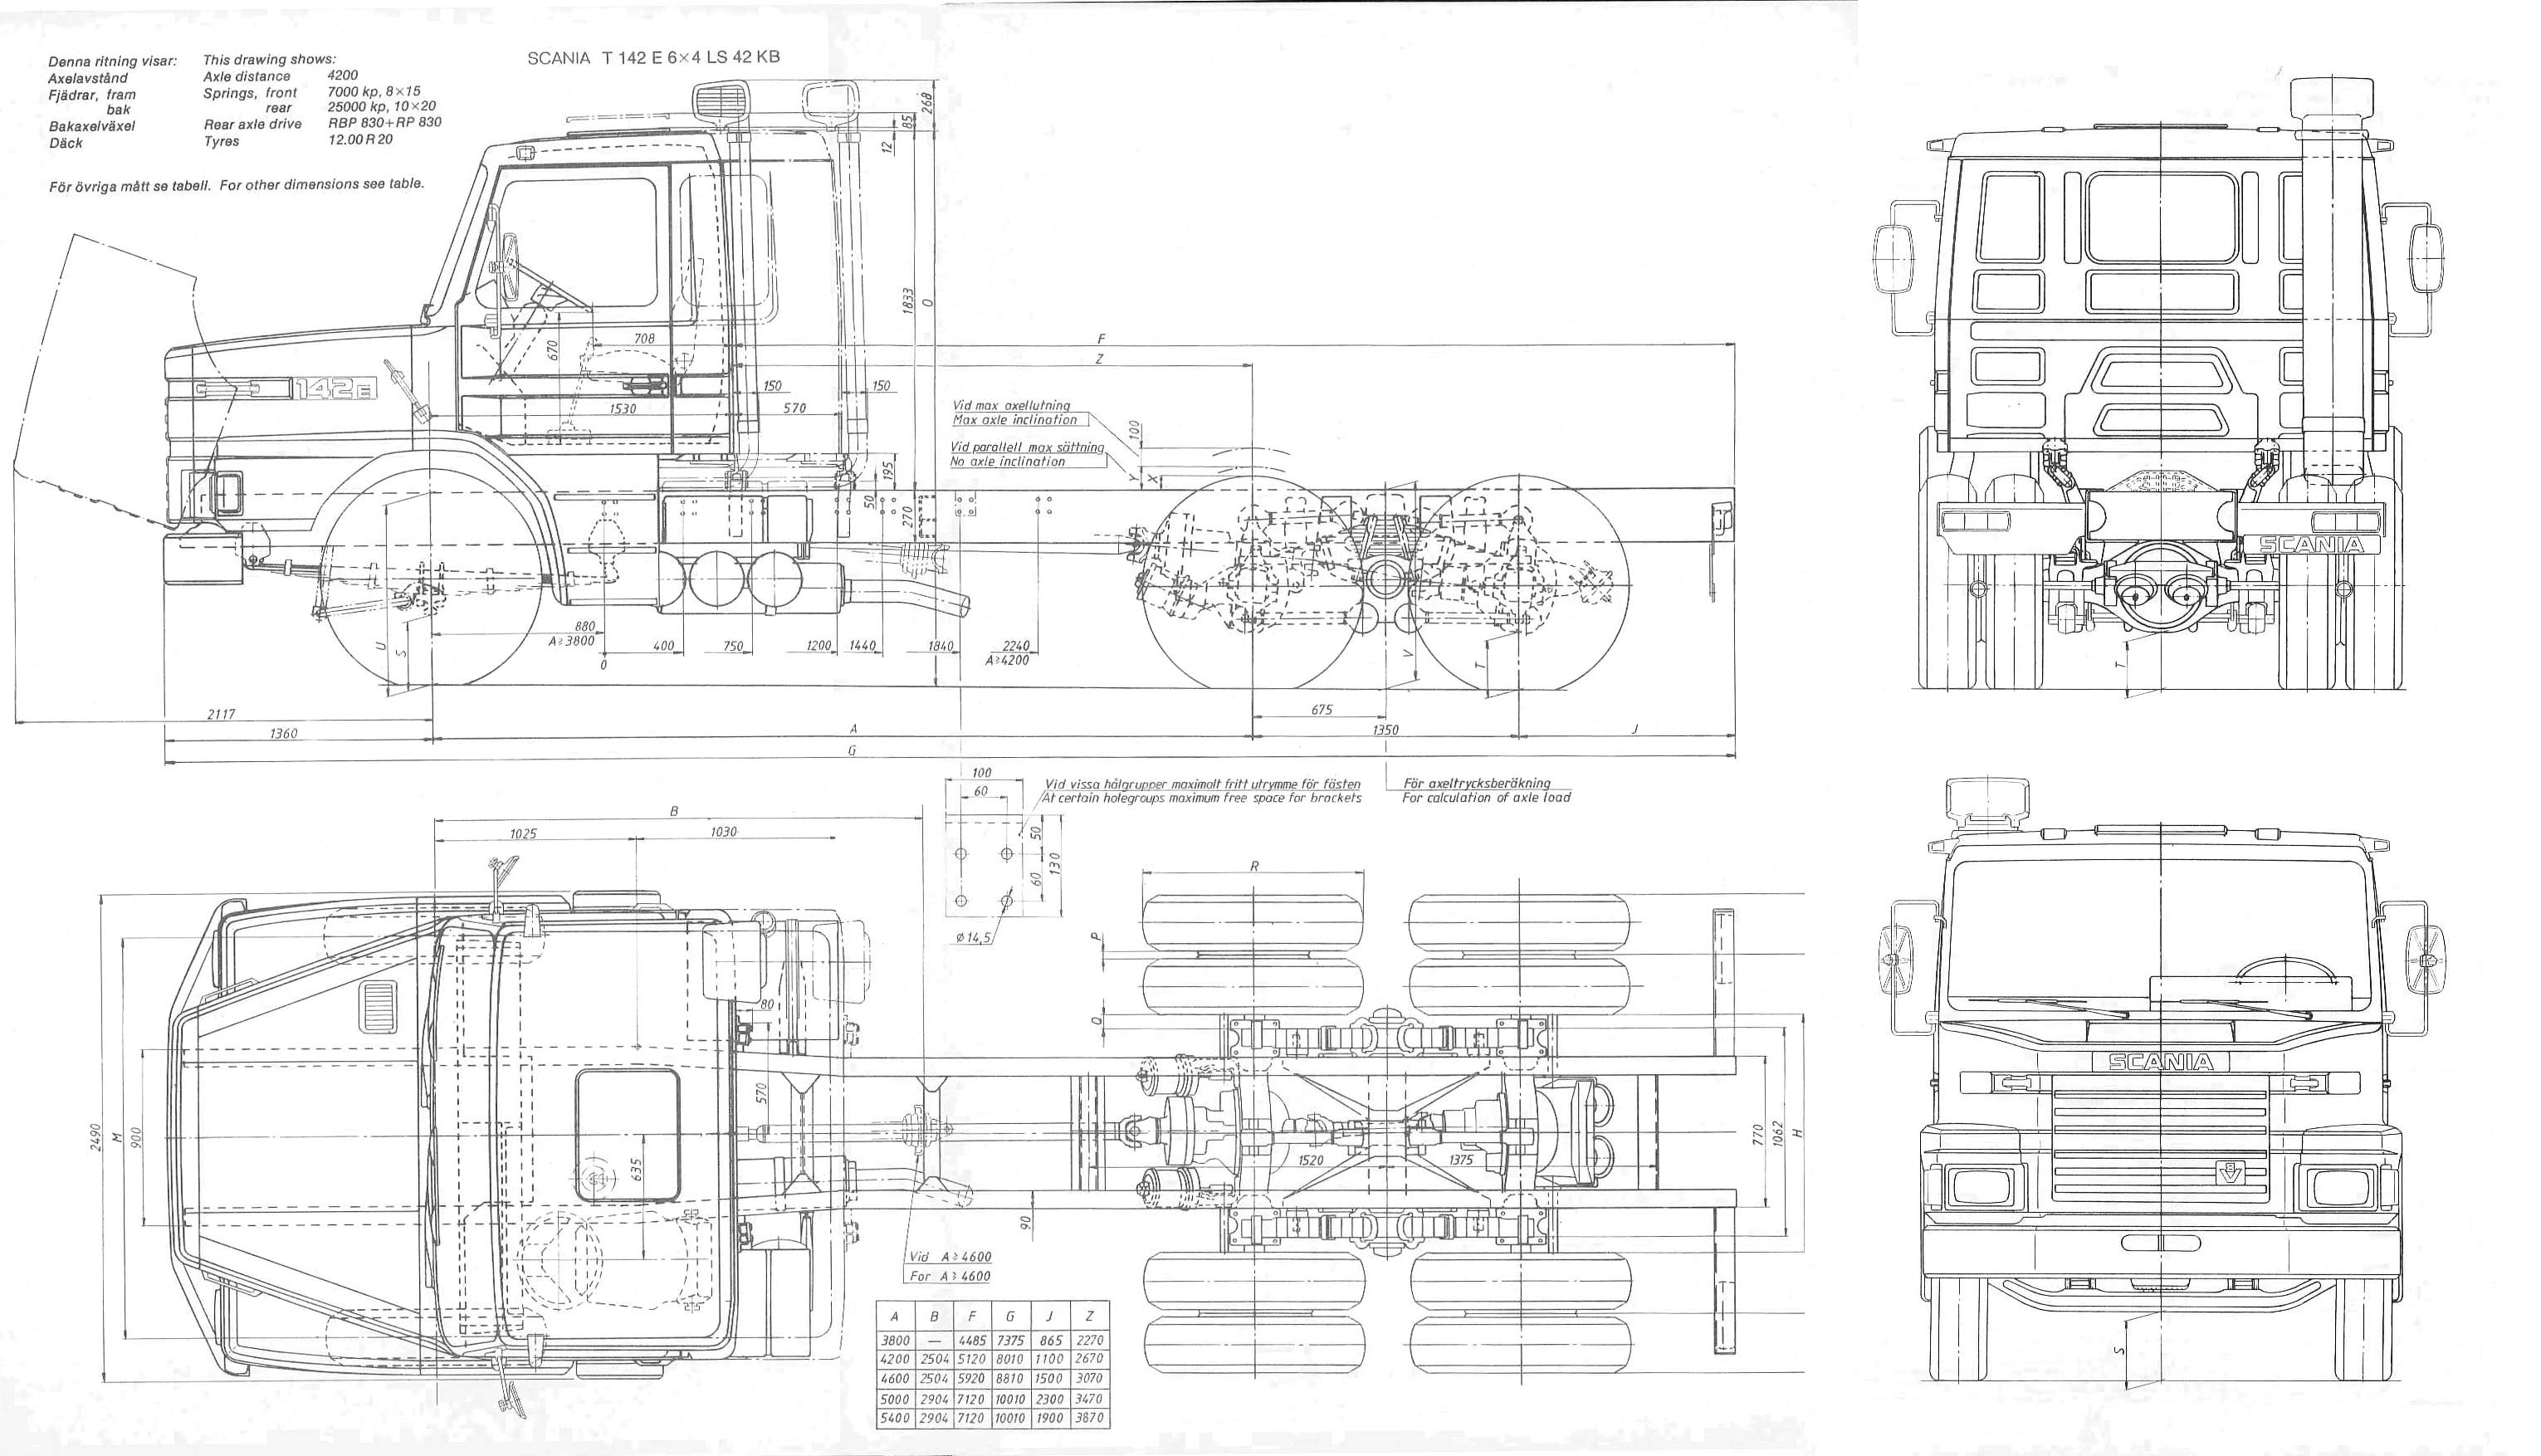 Scania T 142 blueprint